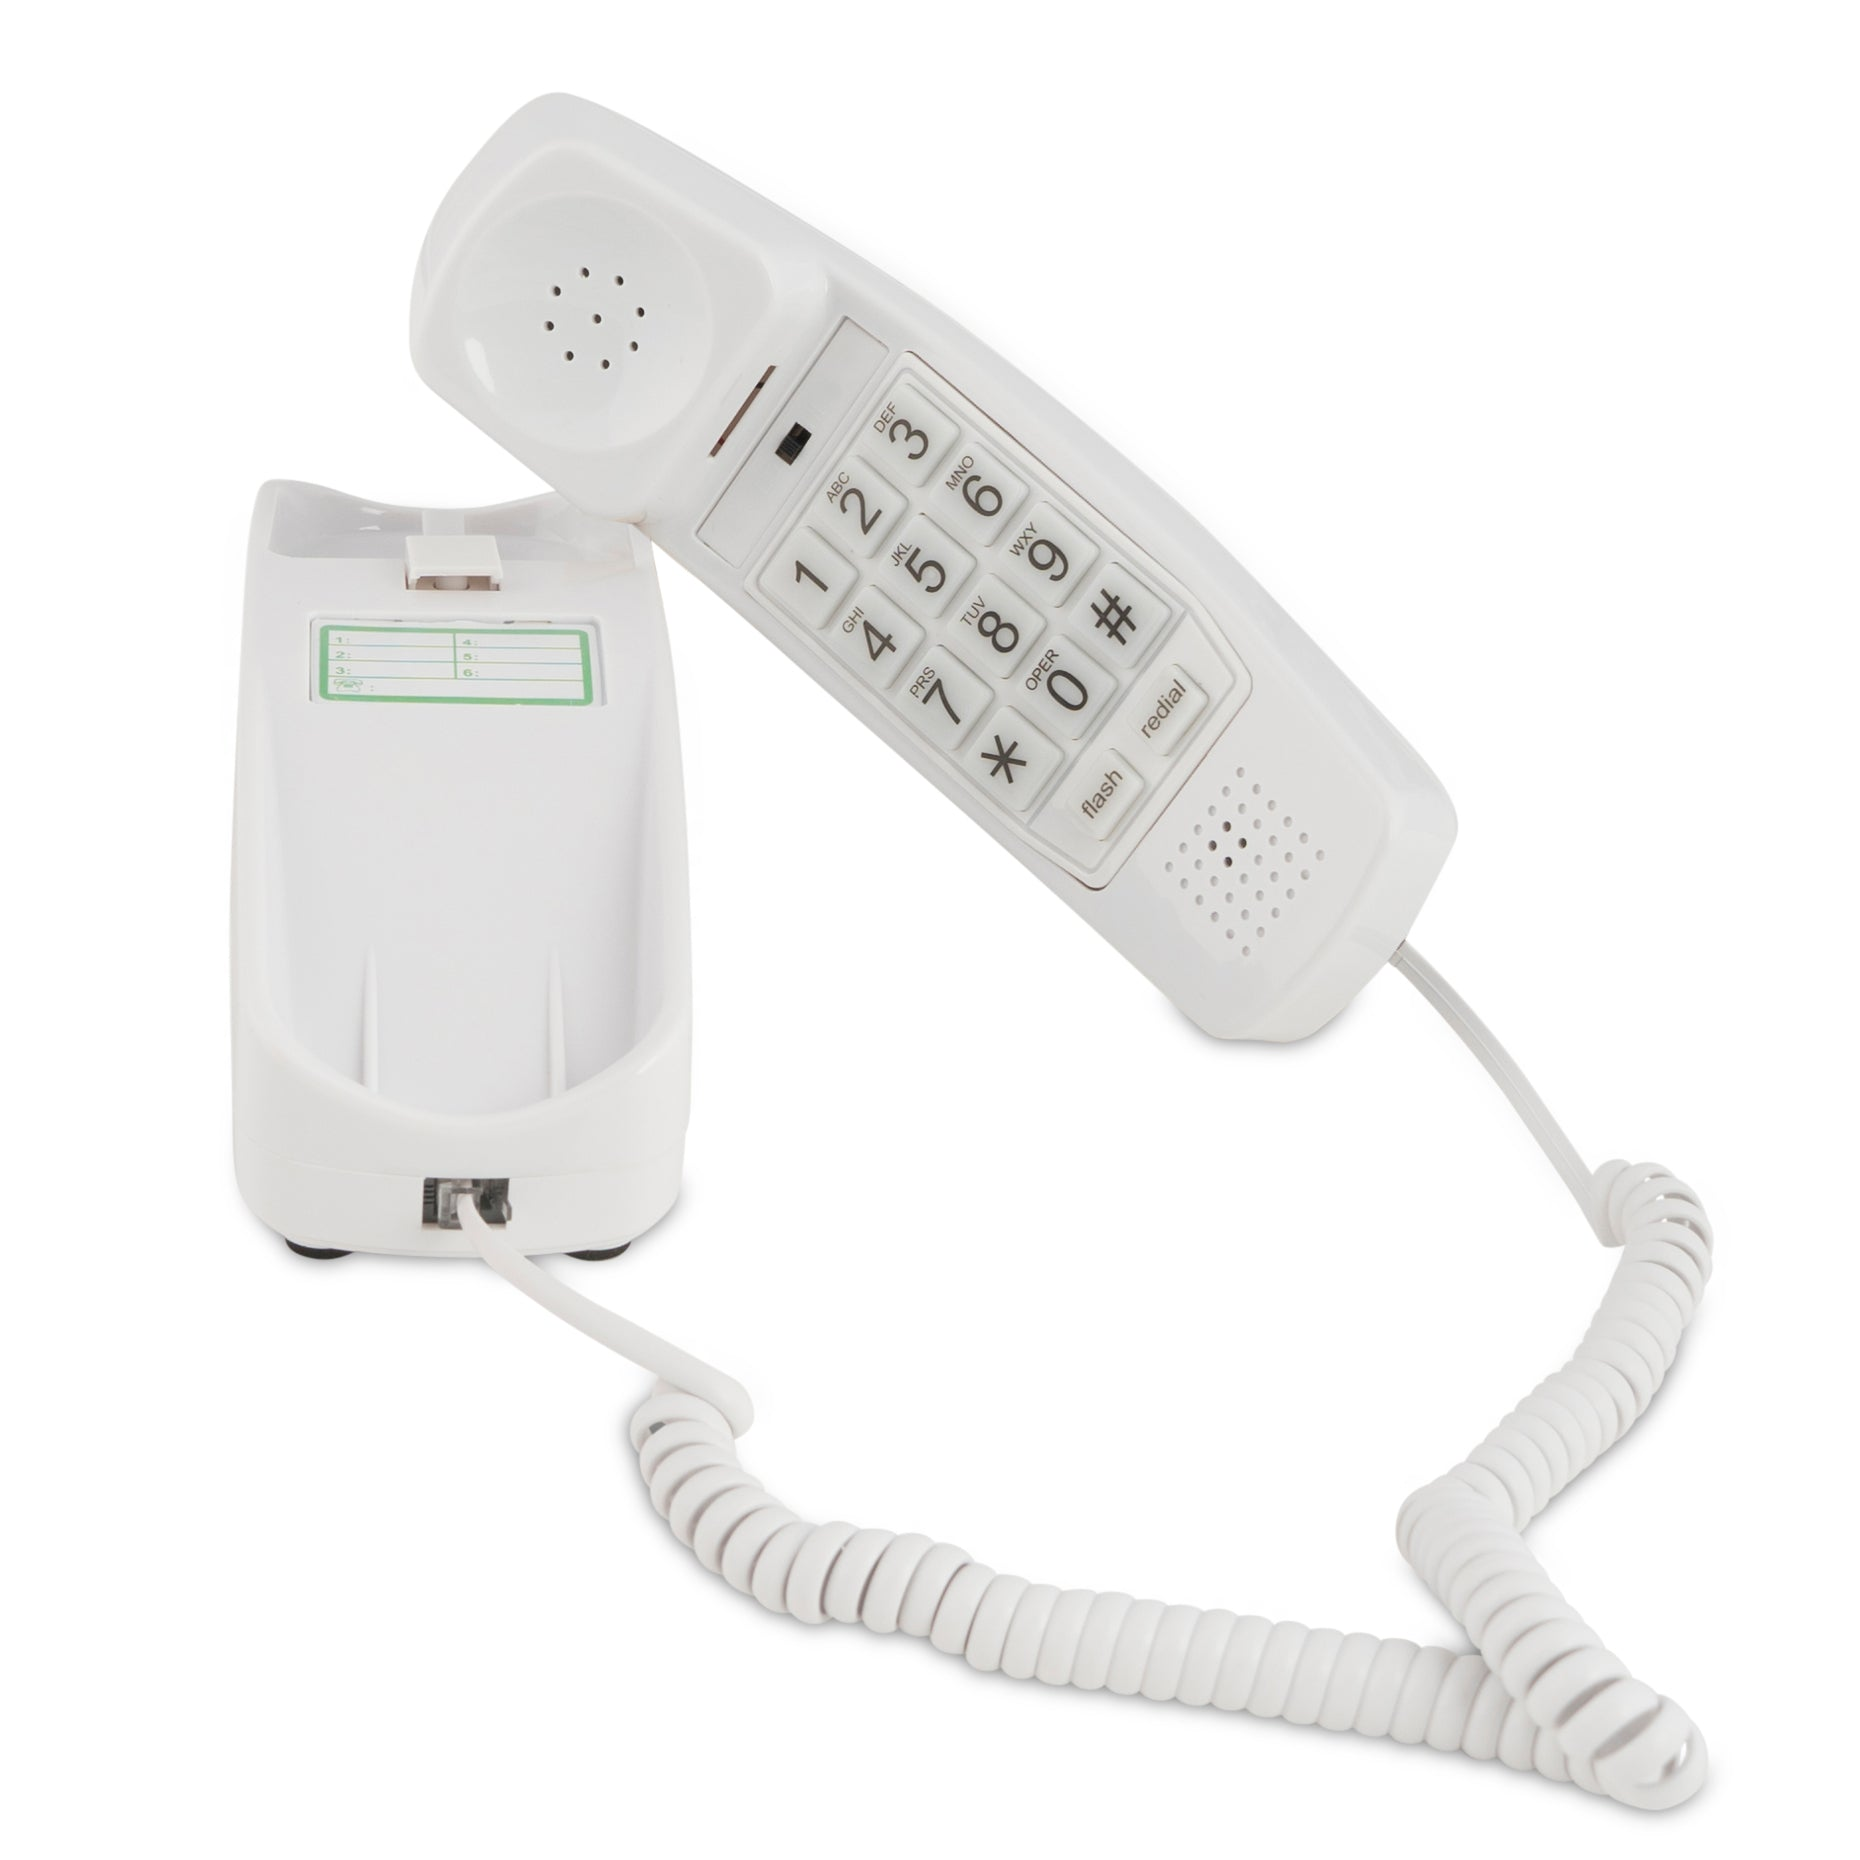 Trimline Corded Phone - Choctaw White